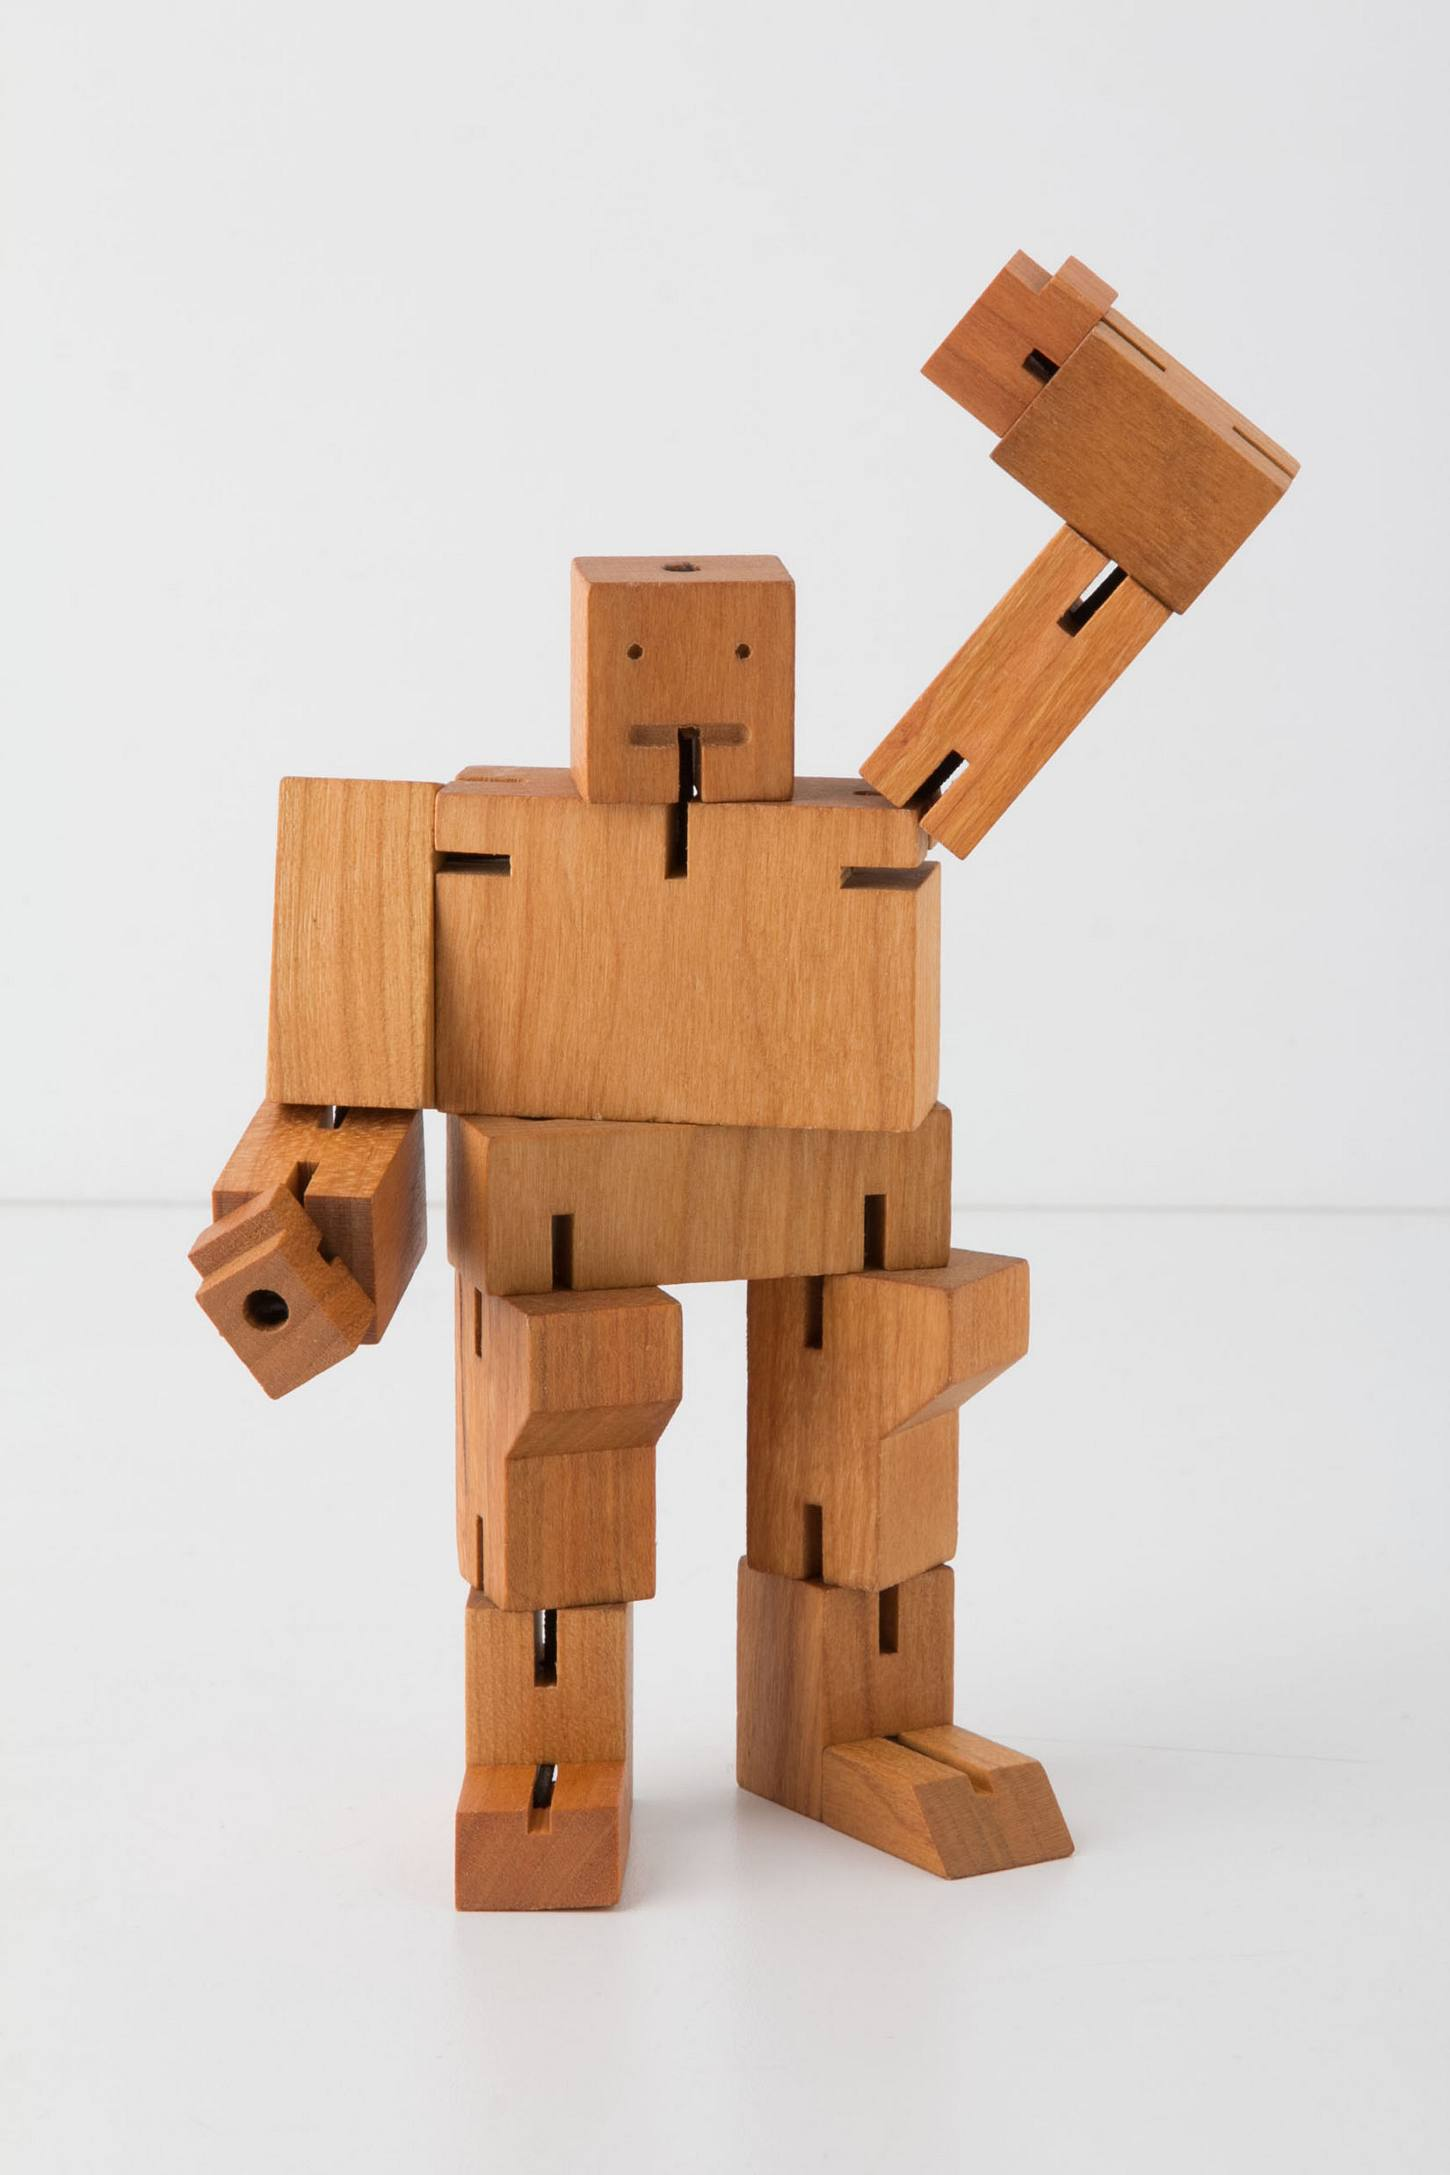 Cube-Bot Wooden Toy